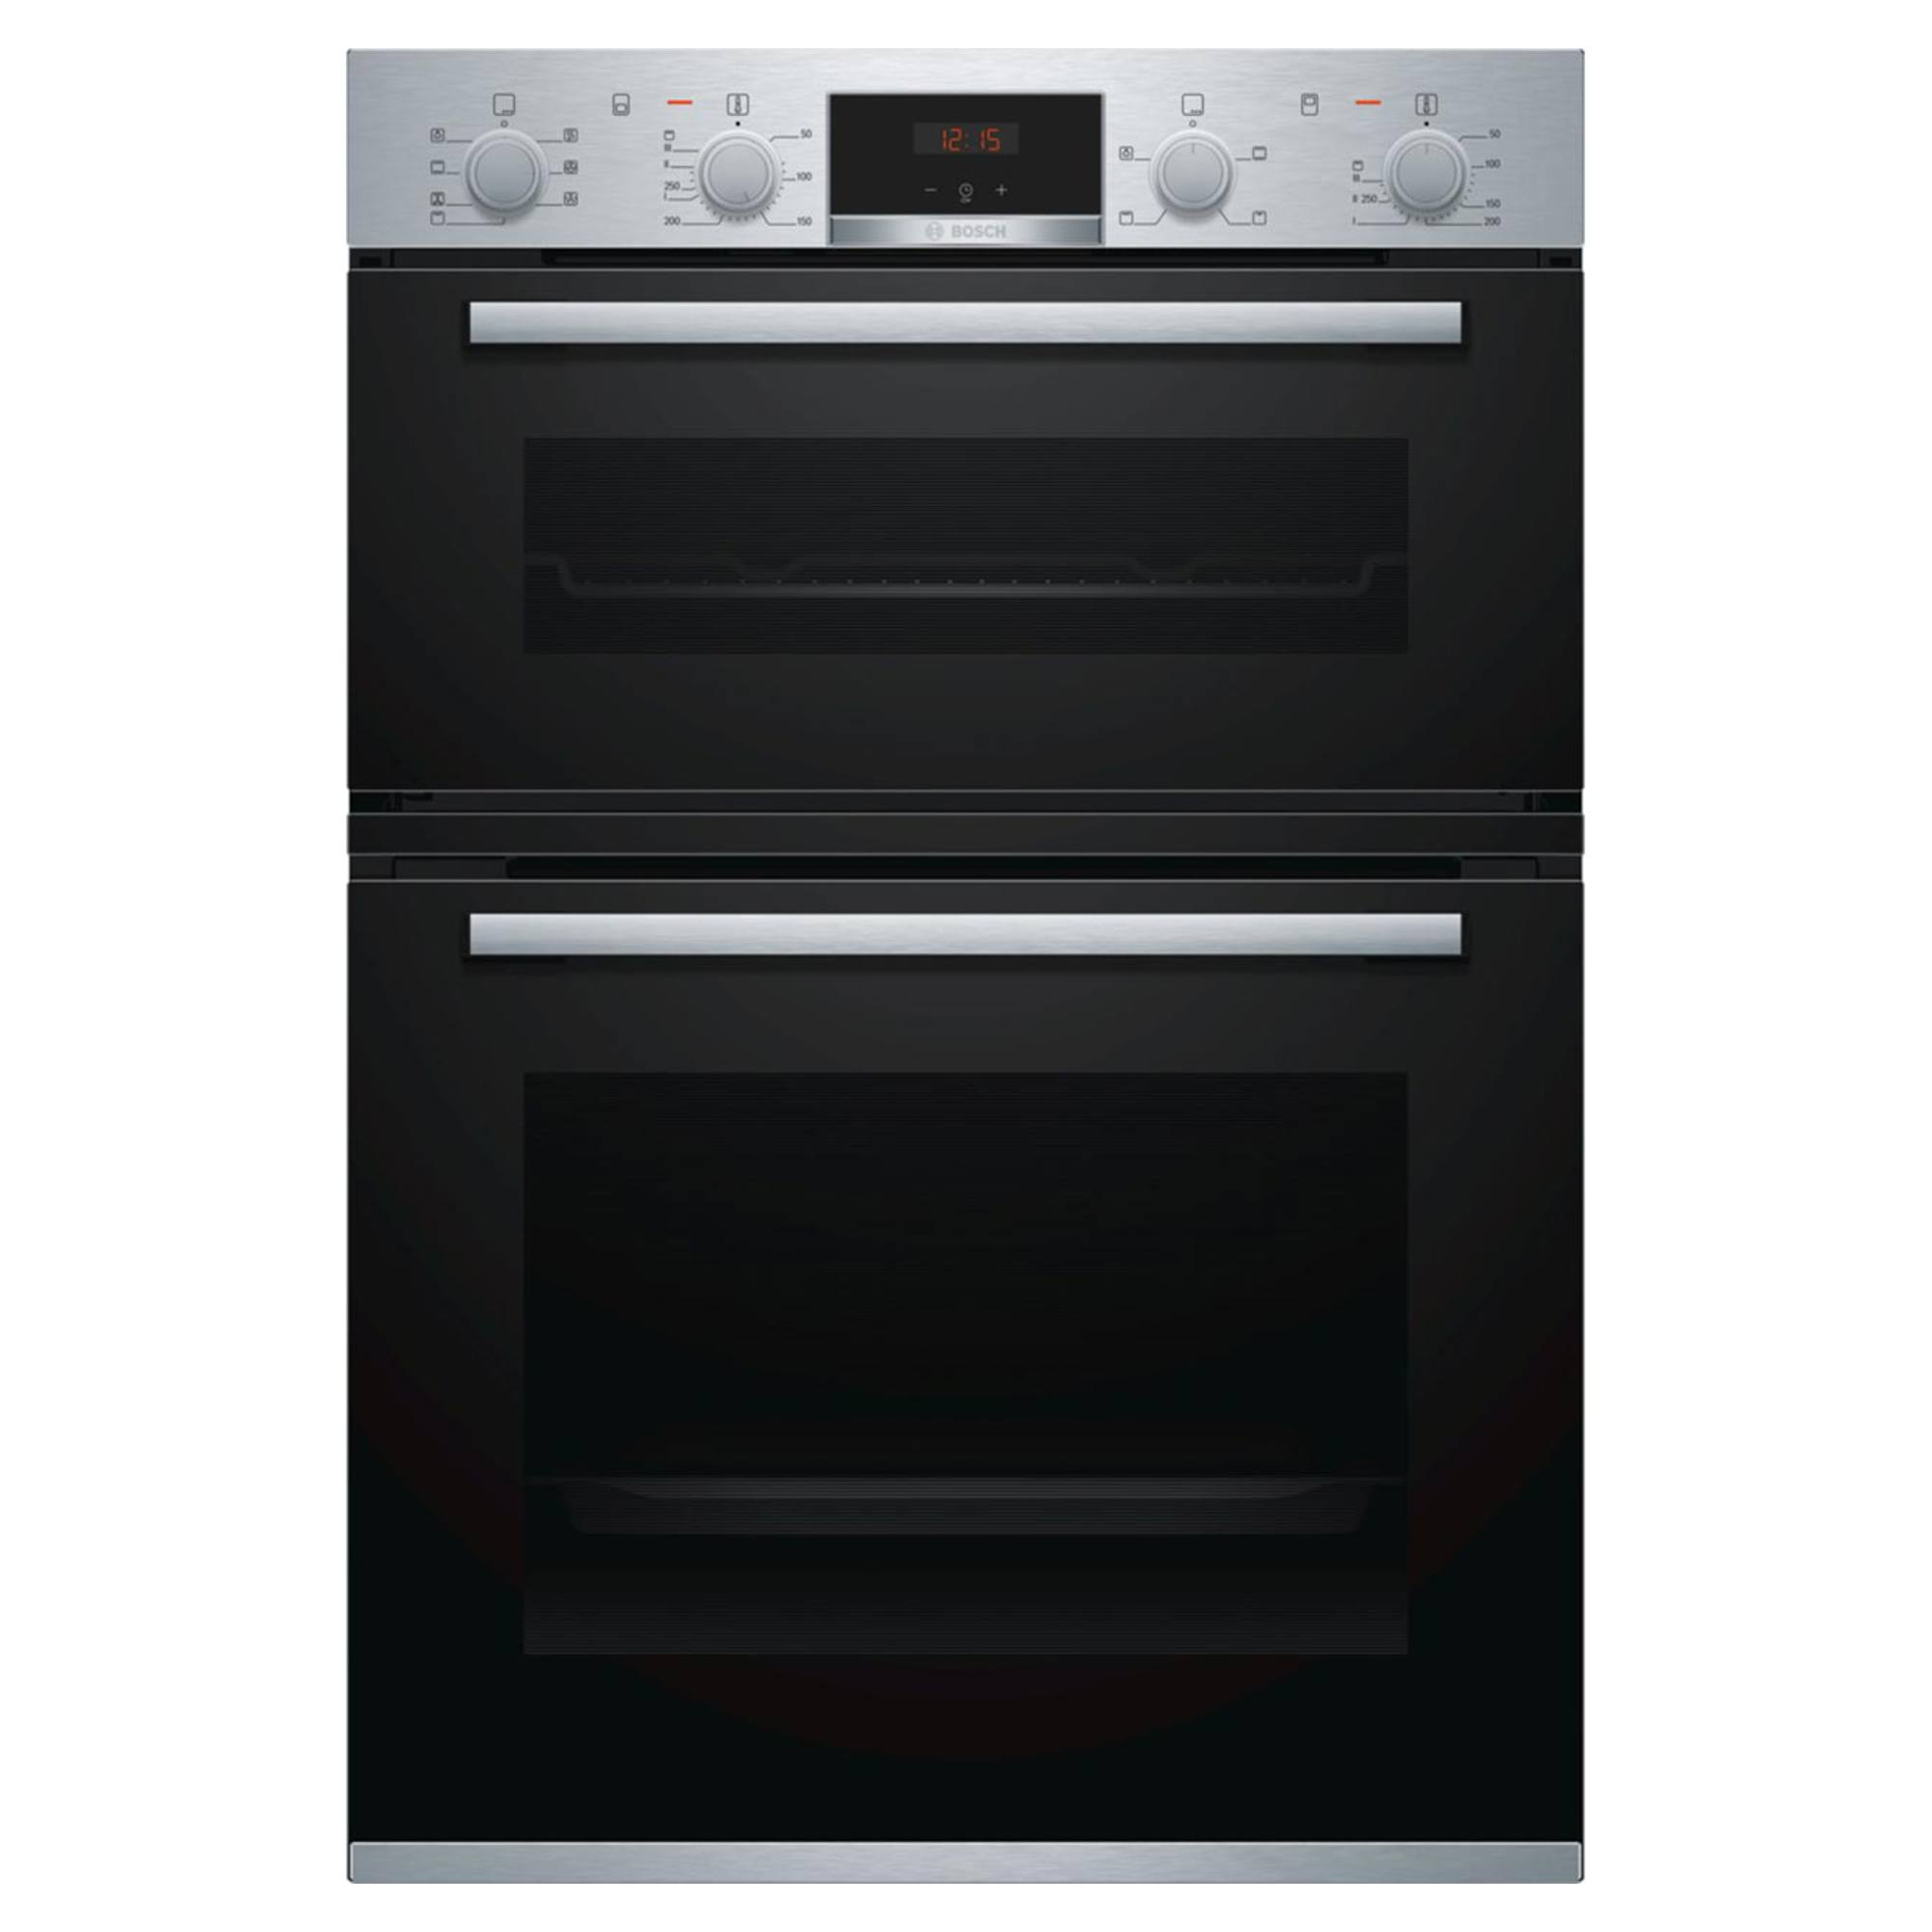 Bosch Serie 4 MBS533BS0B 105L Electric Built-In Double Oven